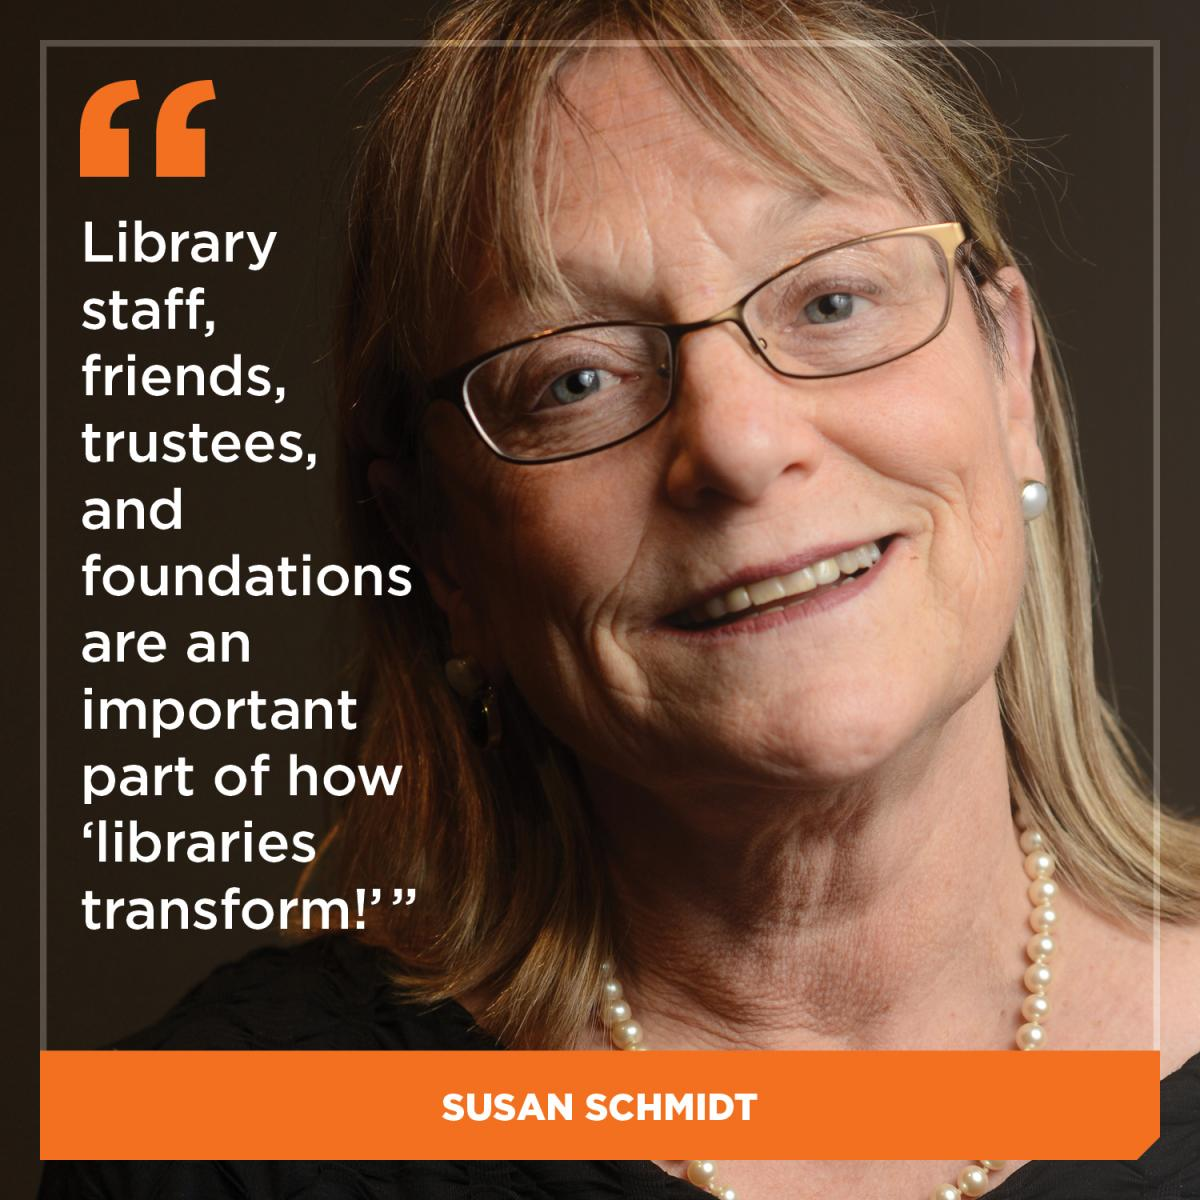 Library staff, friends, trustees, and foundations are an important part of how 'libraries transform!' - Susan Schmidt